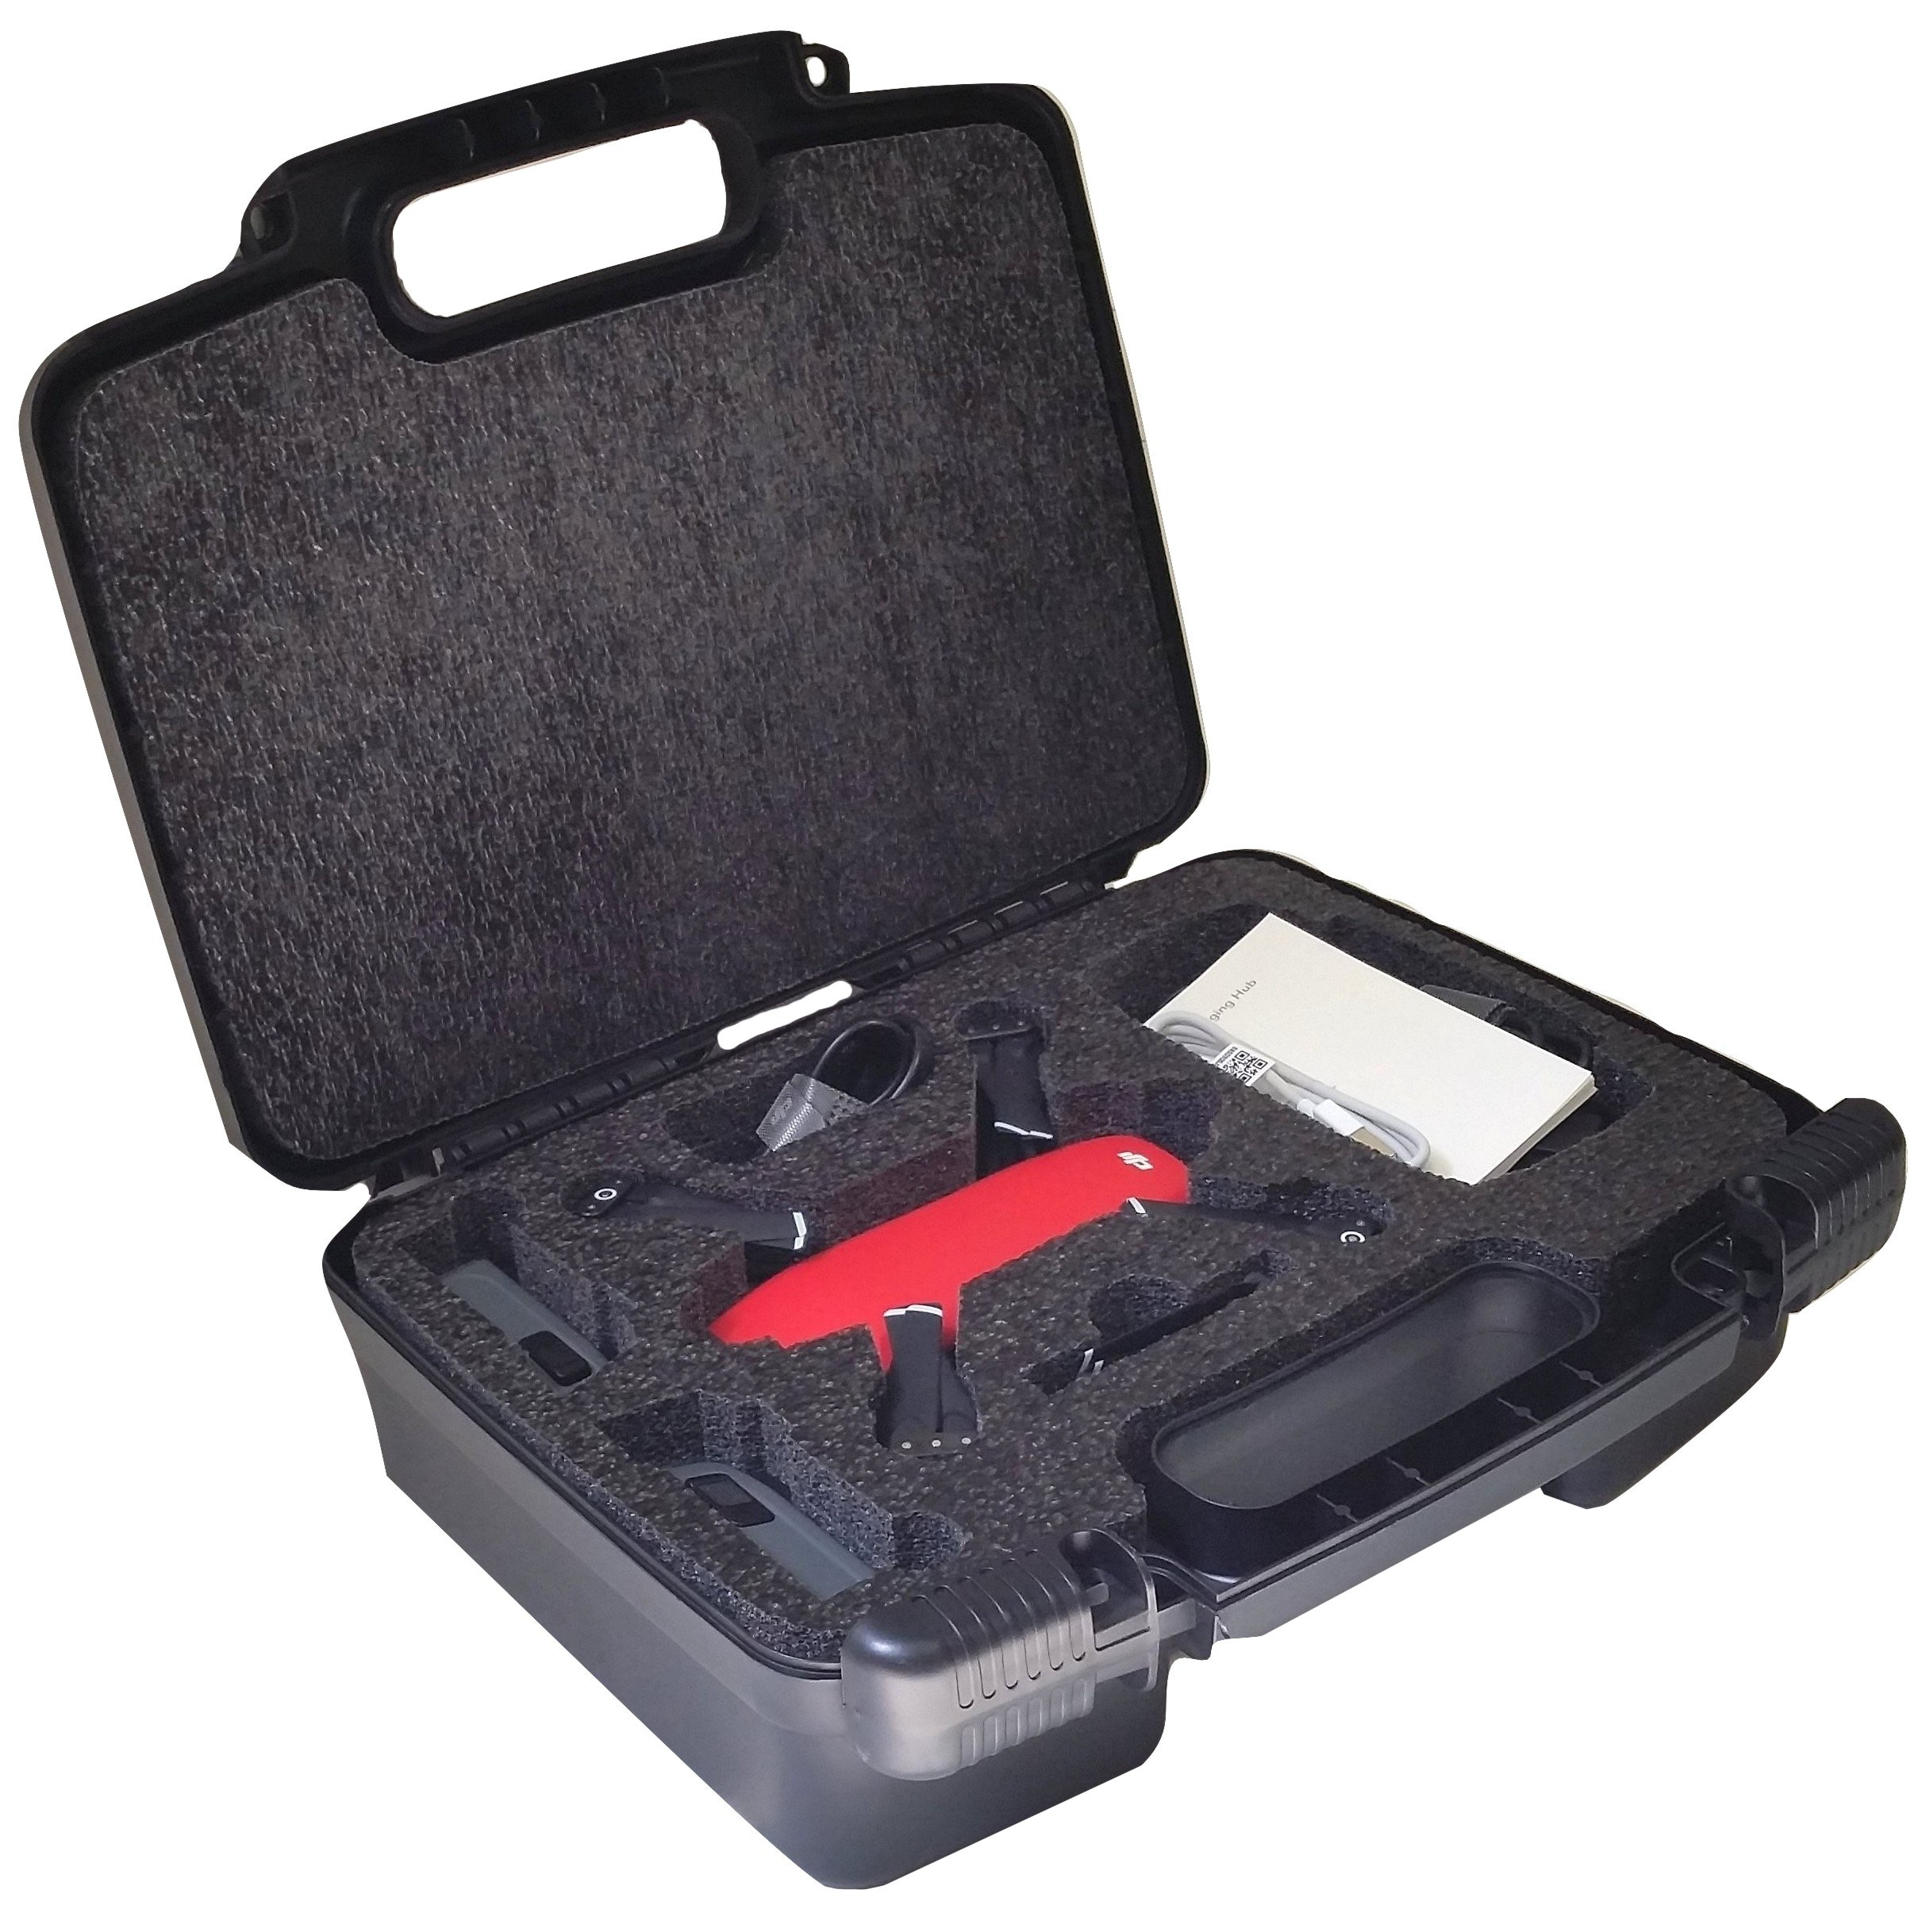 DJI Spark Drone Carry Case Picture 7